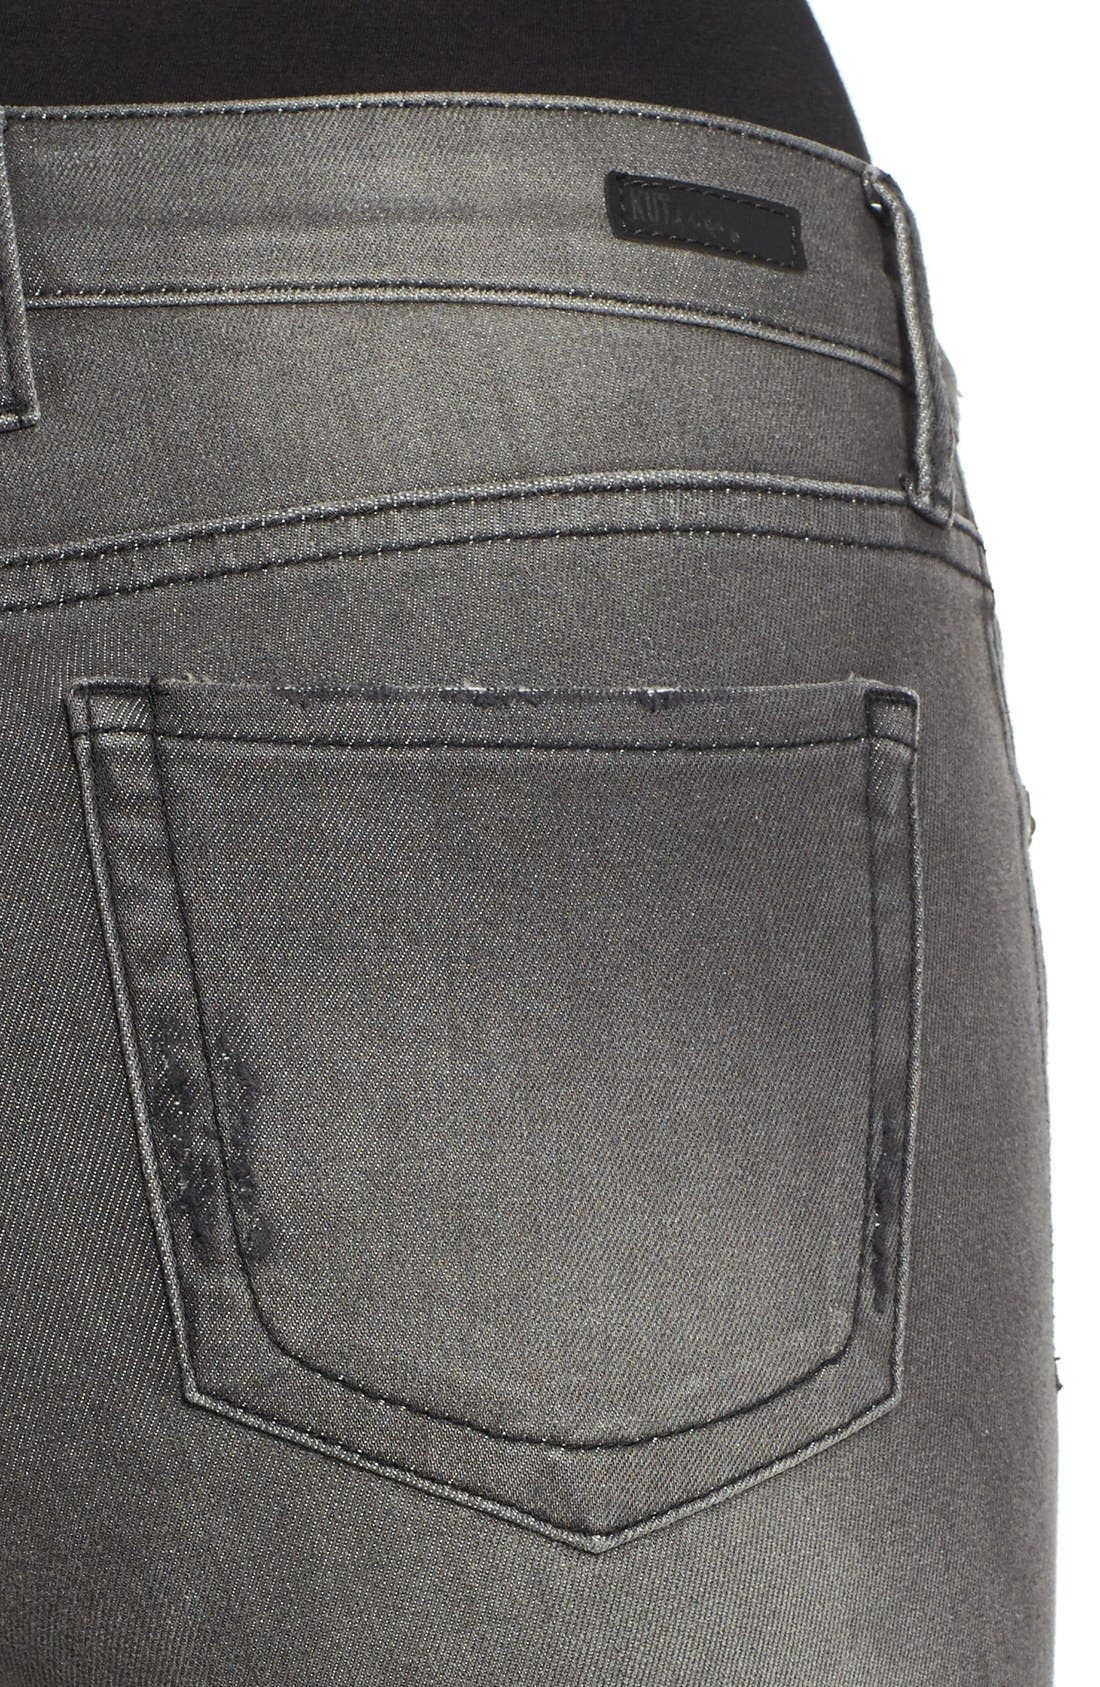 Alternate Image 4  - KUT from the Kloth 'Diana' Stretch Skinny Jeans (Continuity) (Regular & Petite)